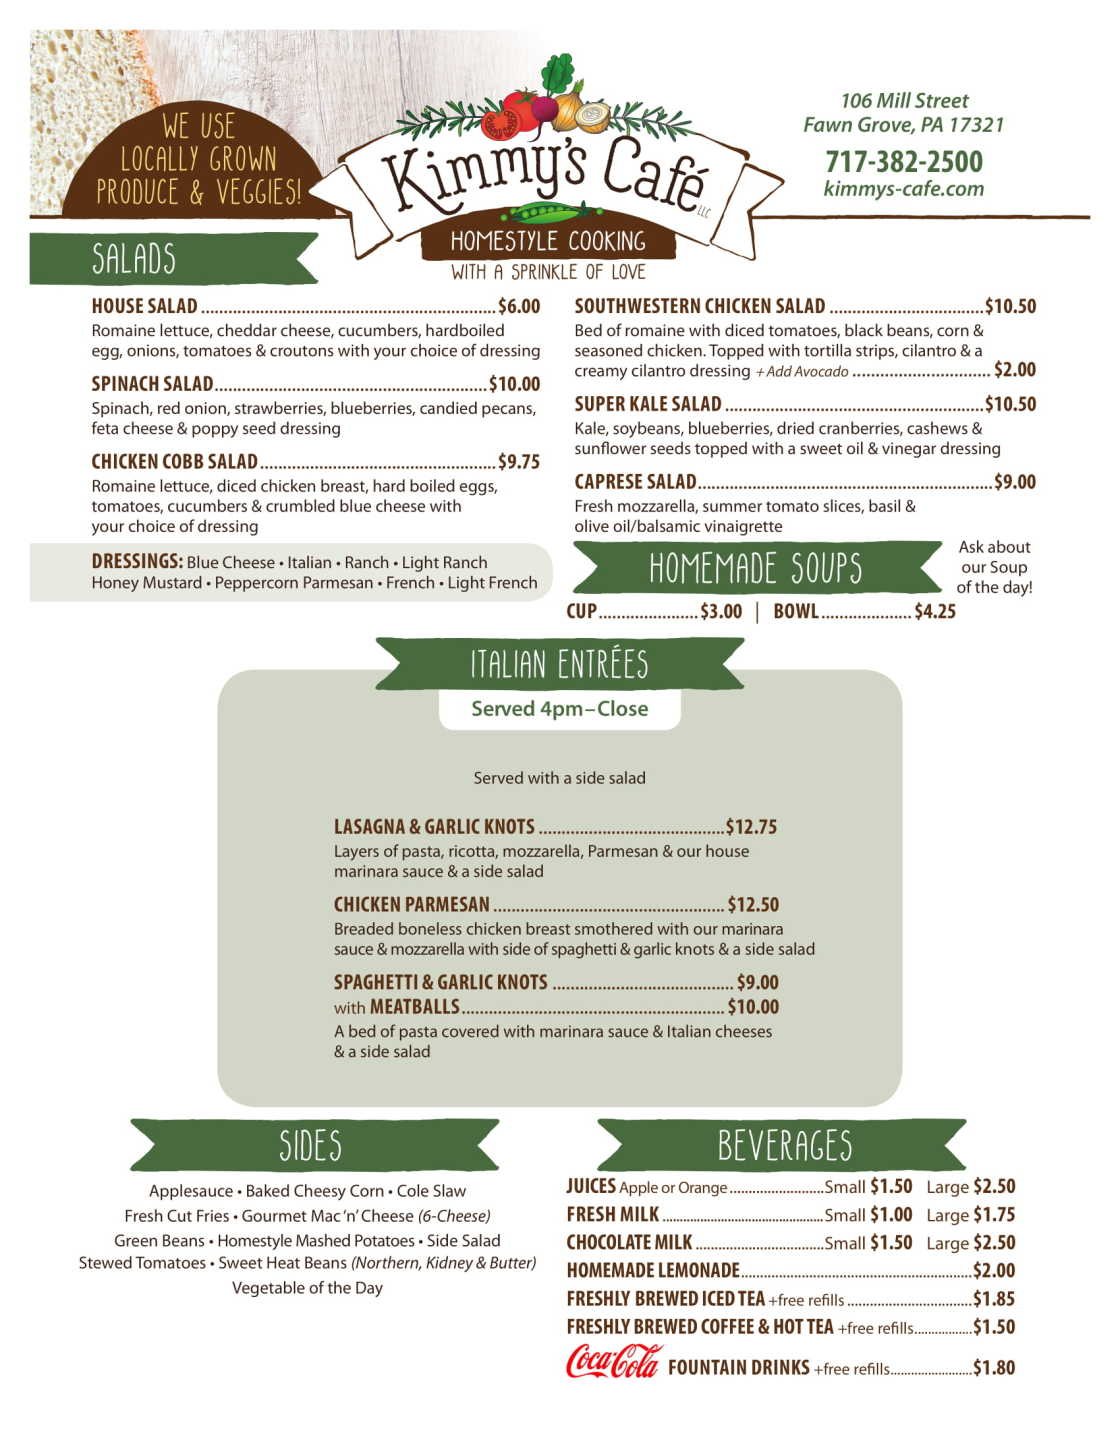 Kimmy's Cafe Salads, Entrees & Sides